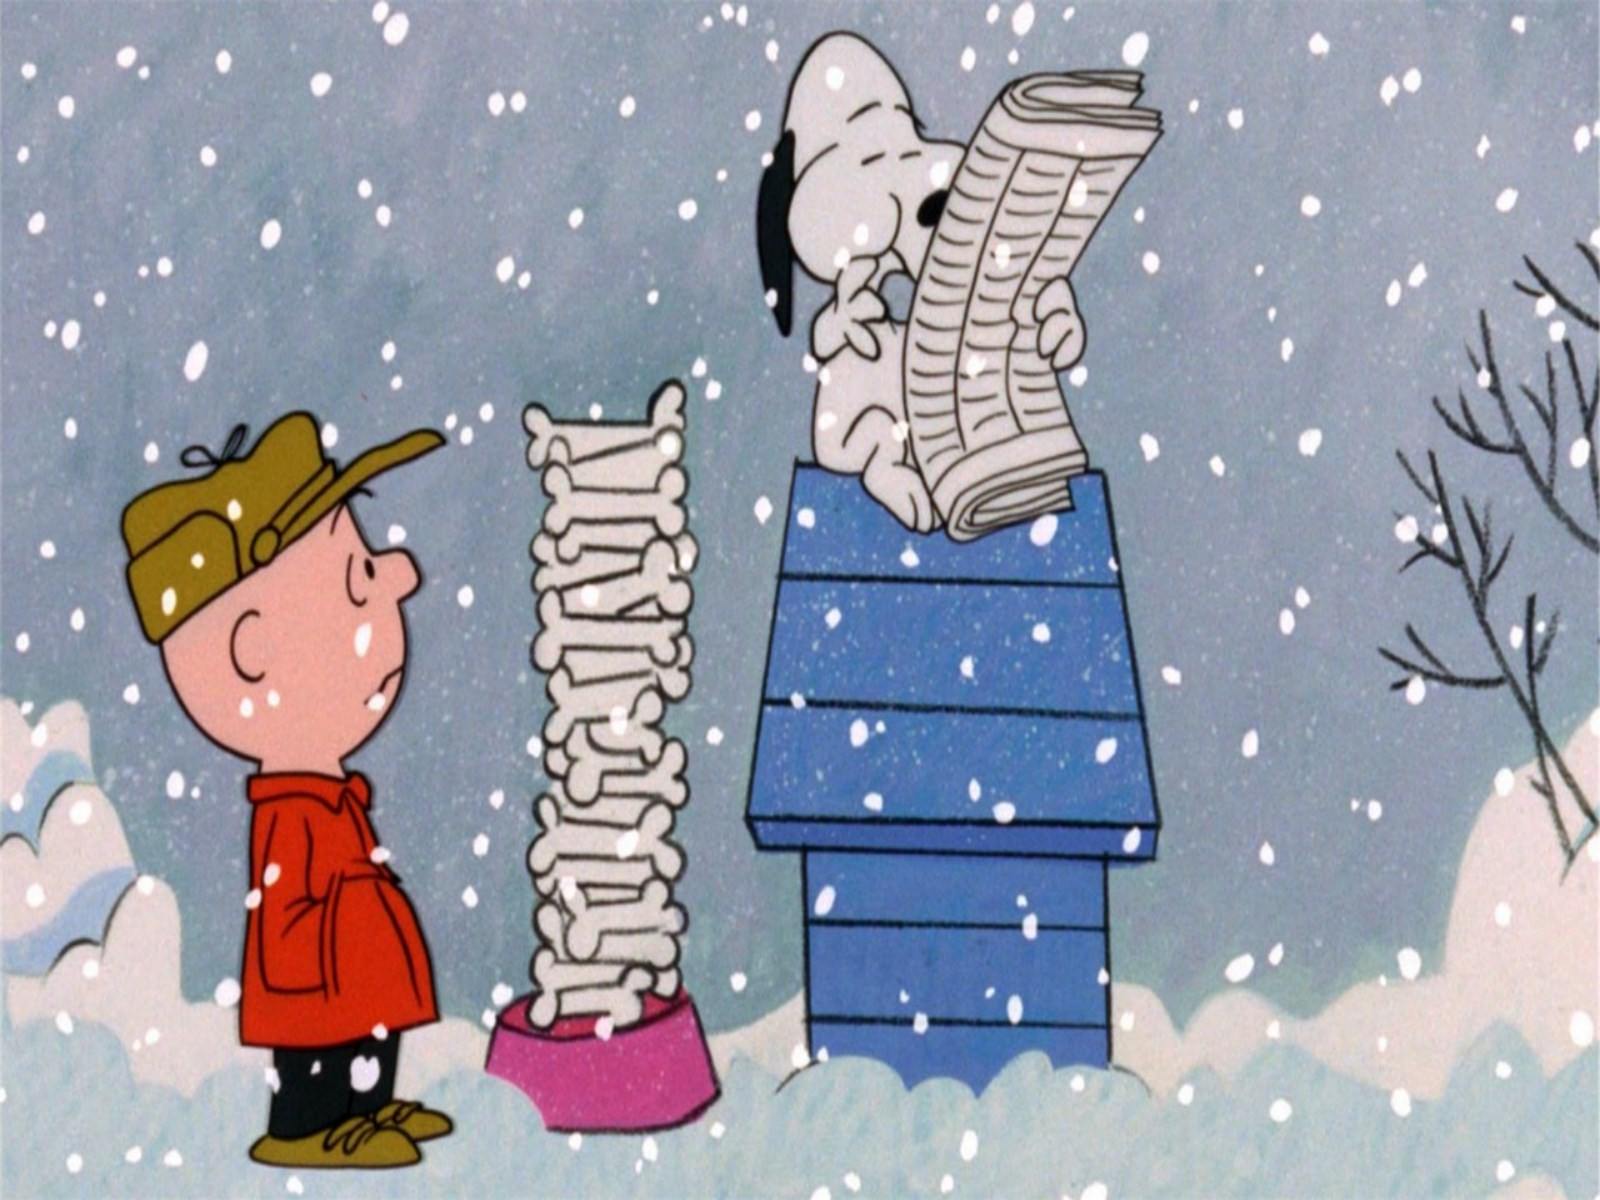 Cute Wallpapers With Quotes For Whatsapp Charlie Brown Christmas Wallpaper Free Download